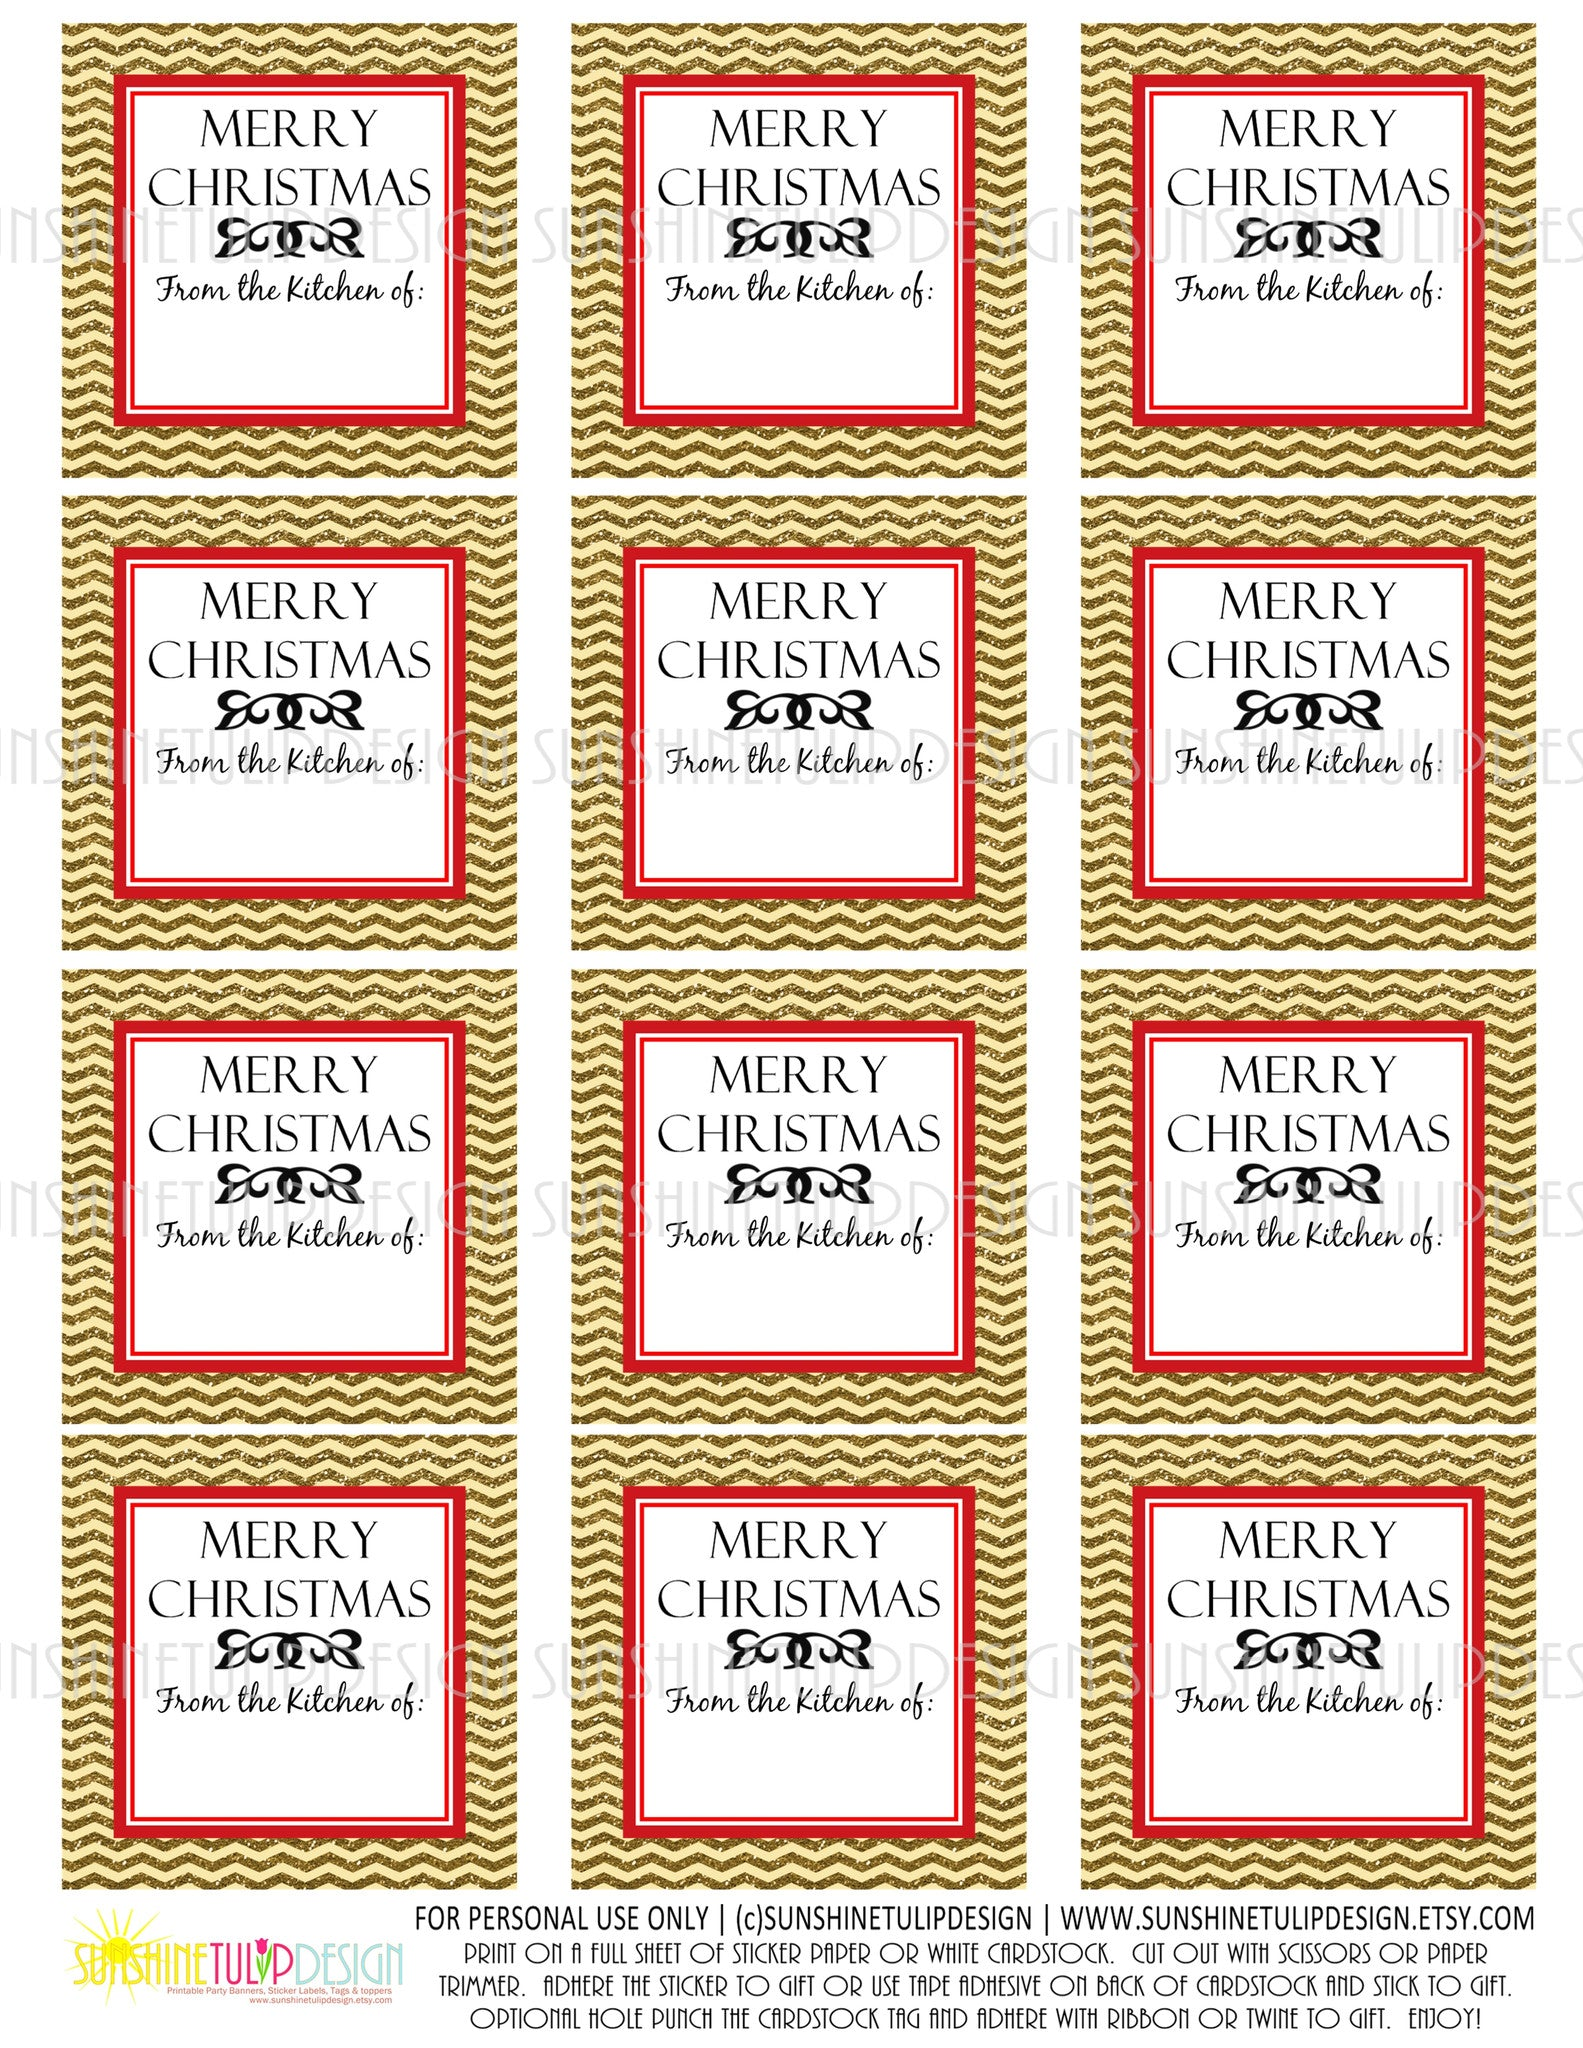 image regarding Printable Christmas Gift Labels referred to as Printable Xmas Foods Labels, Baked With Enjoy Xmas Present Tags, Xmas Food items tags